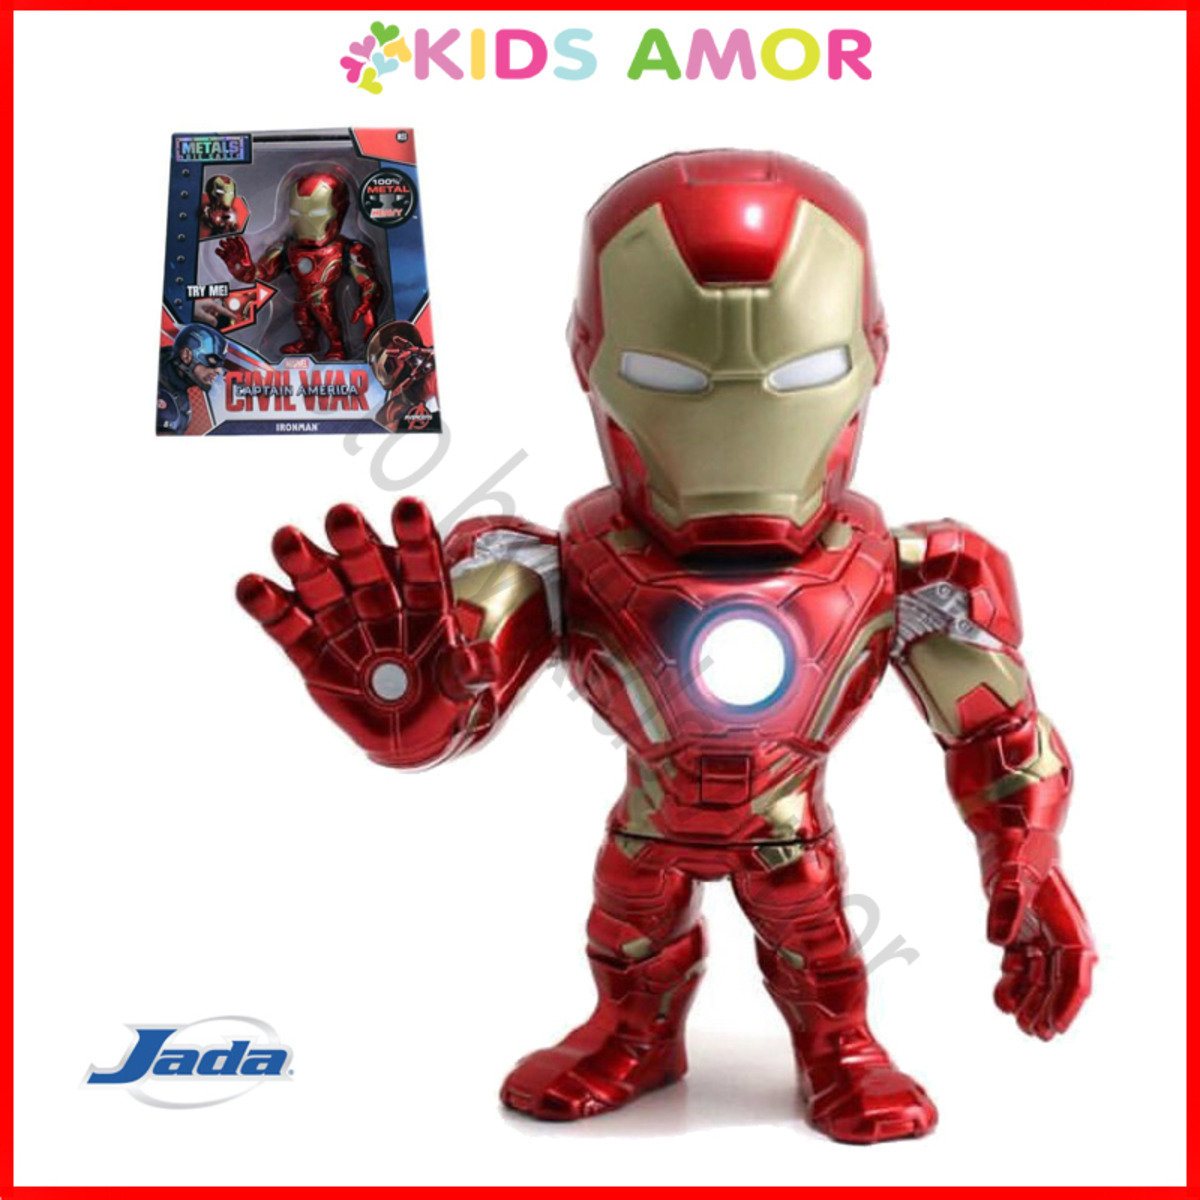 "Marvel Captain America 3 美國隊長 3 Civil War: 6"" 合金Figure - 鐵甲奇俠 Iron Man"